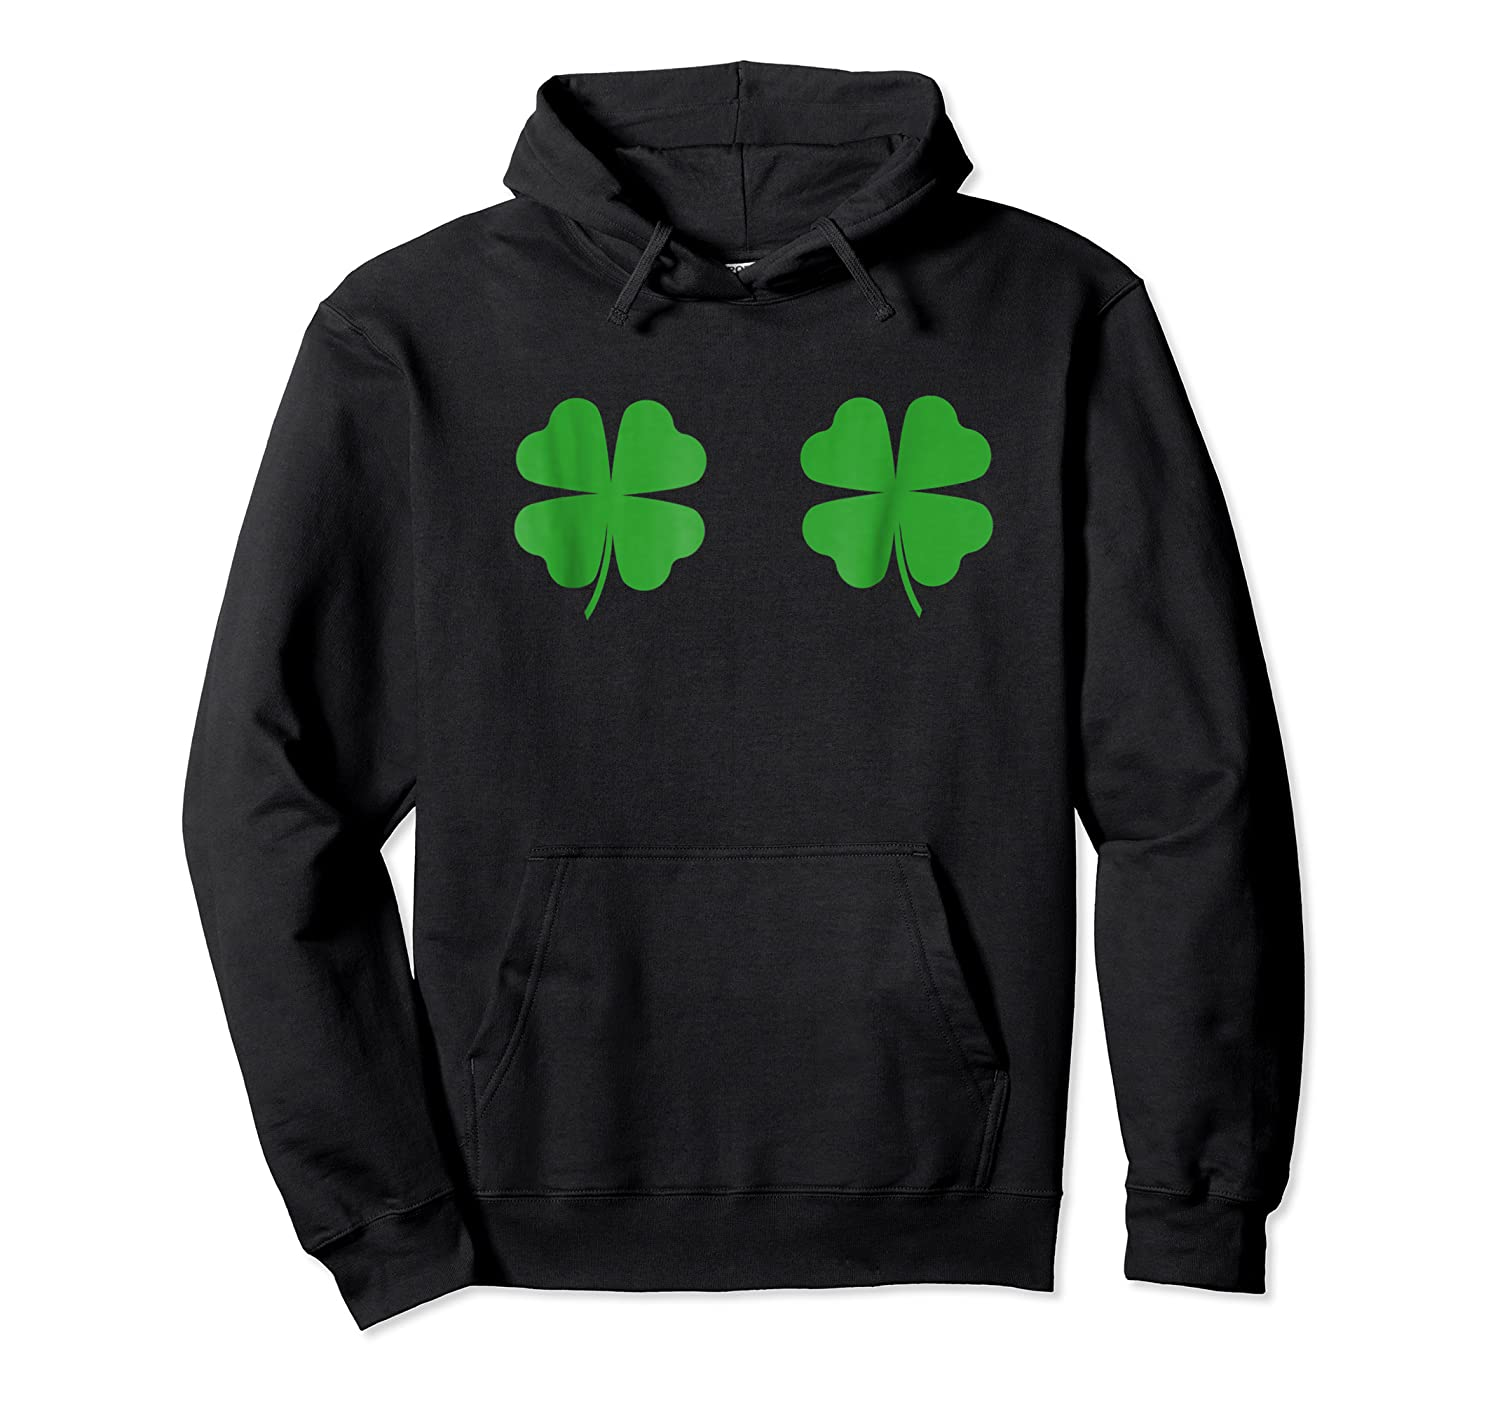 Two Clovers Tshirt Funny St Patrick S Day Boob Shirt Lucky Unisex Pullover Hoodie